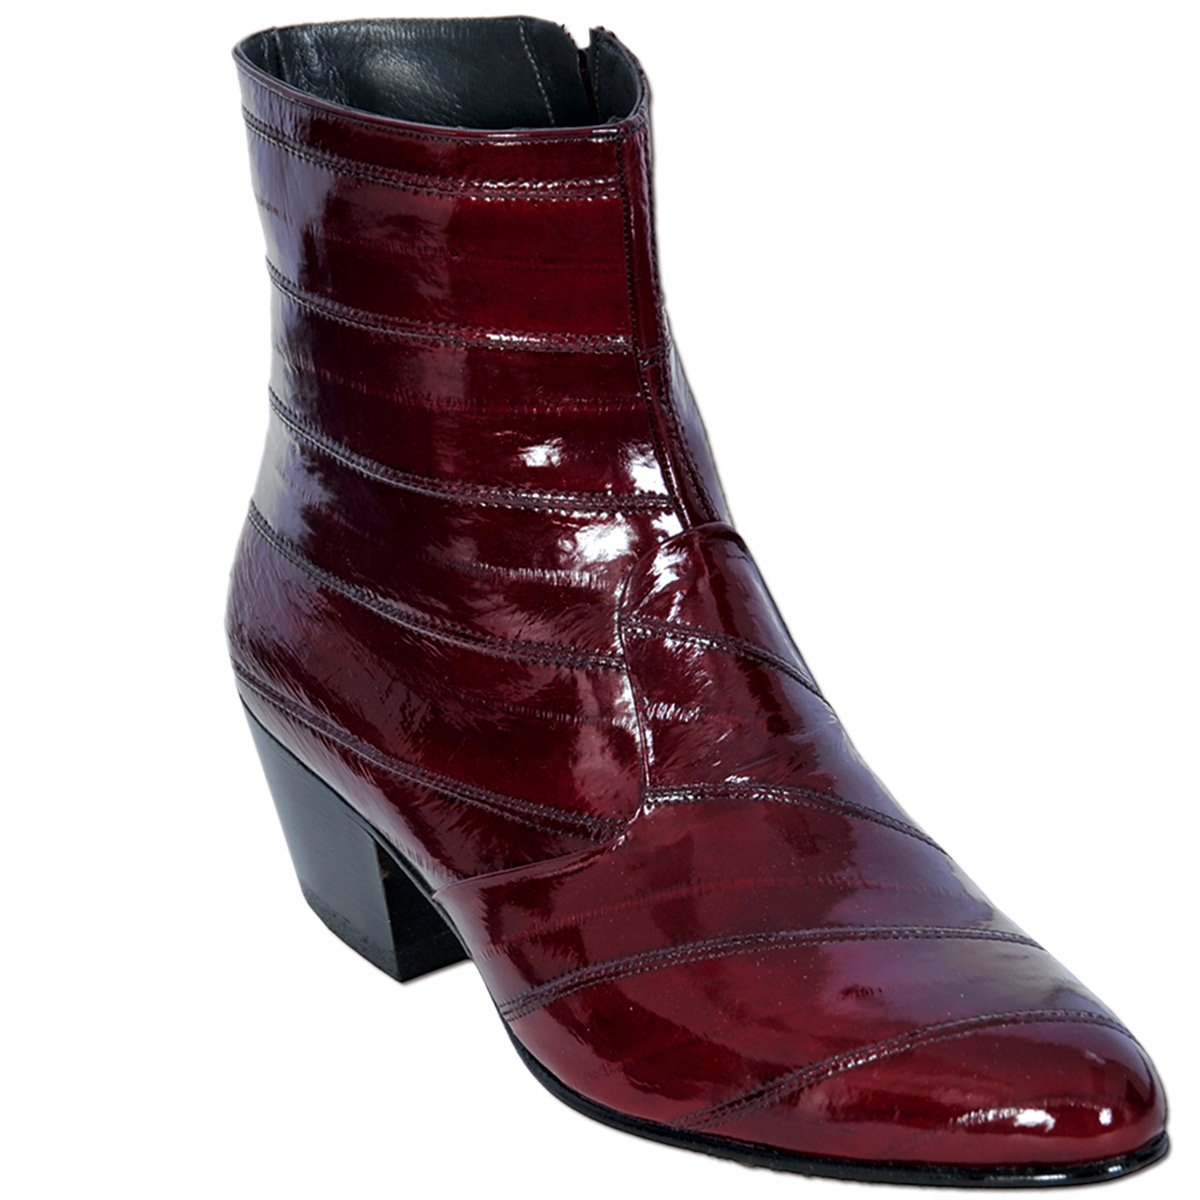 Original Eel Skin Boot LAB-6308